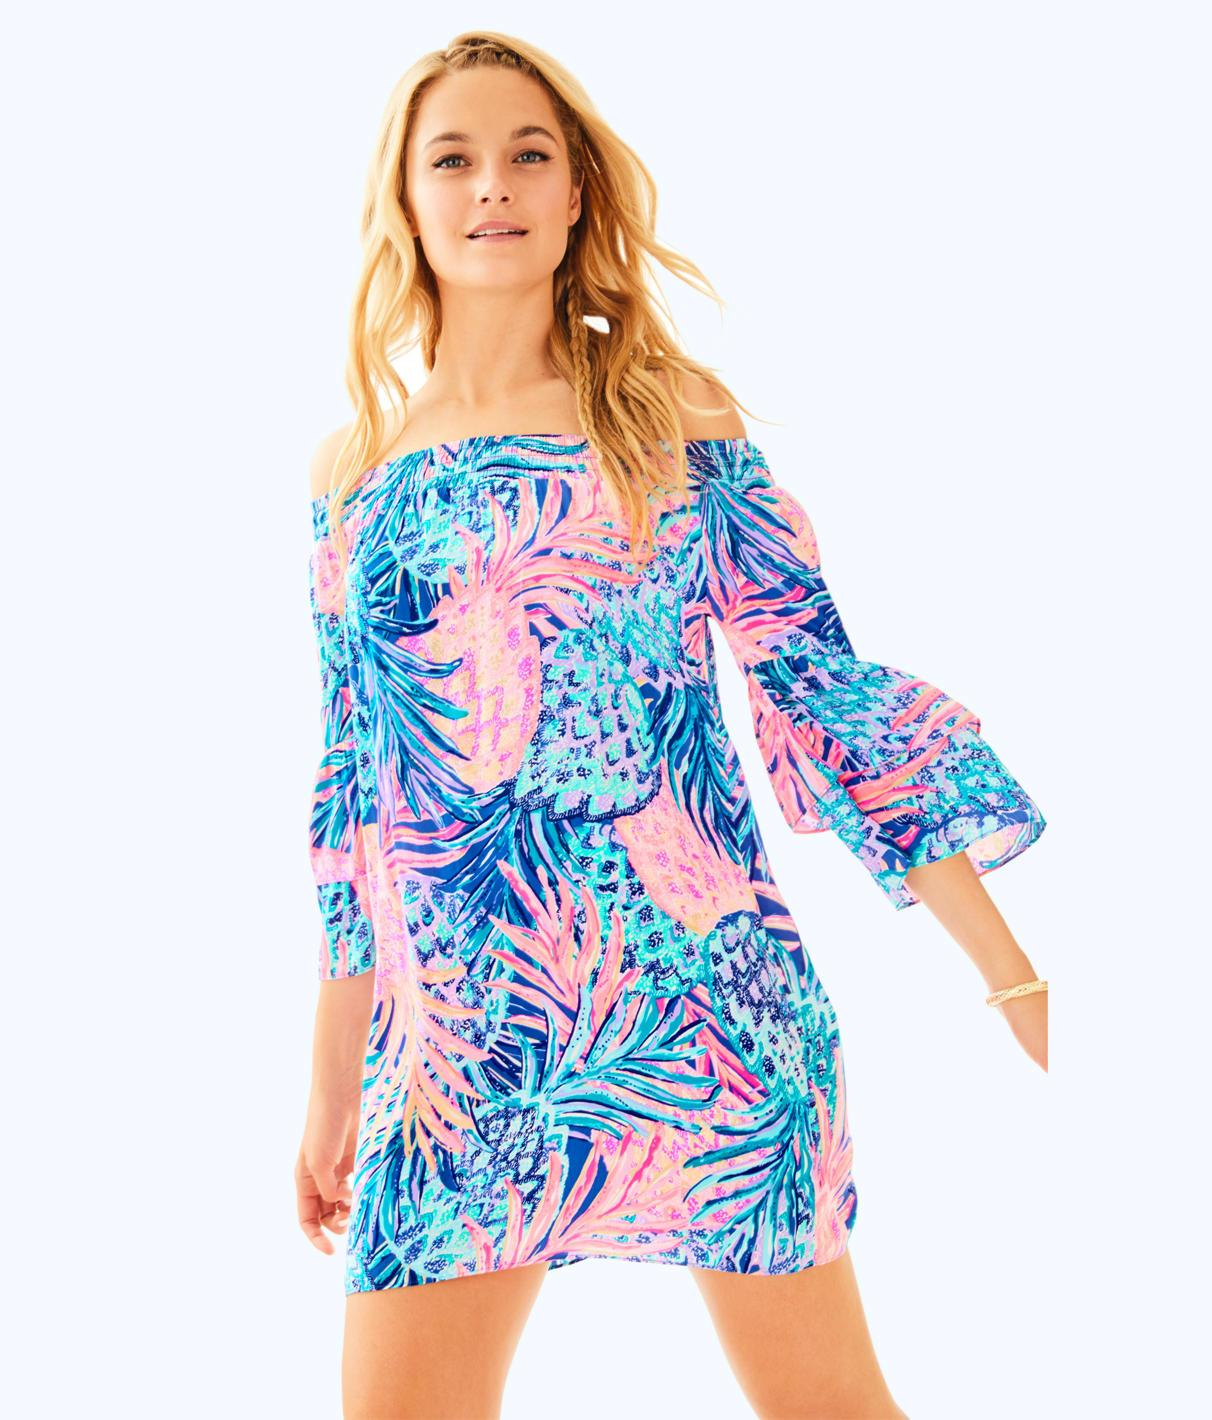 9b8f5a8aefc747 Lilly Pulitzer Tobyn Off The Shoulder Tunic Dress In Multi Gypset Paradise